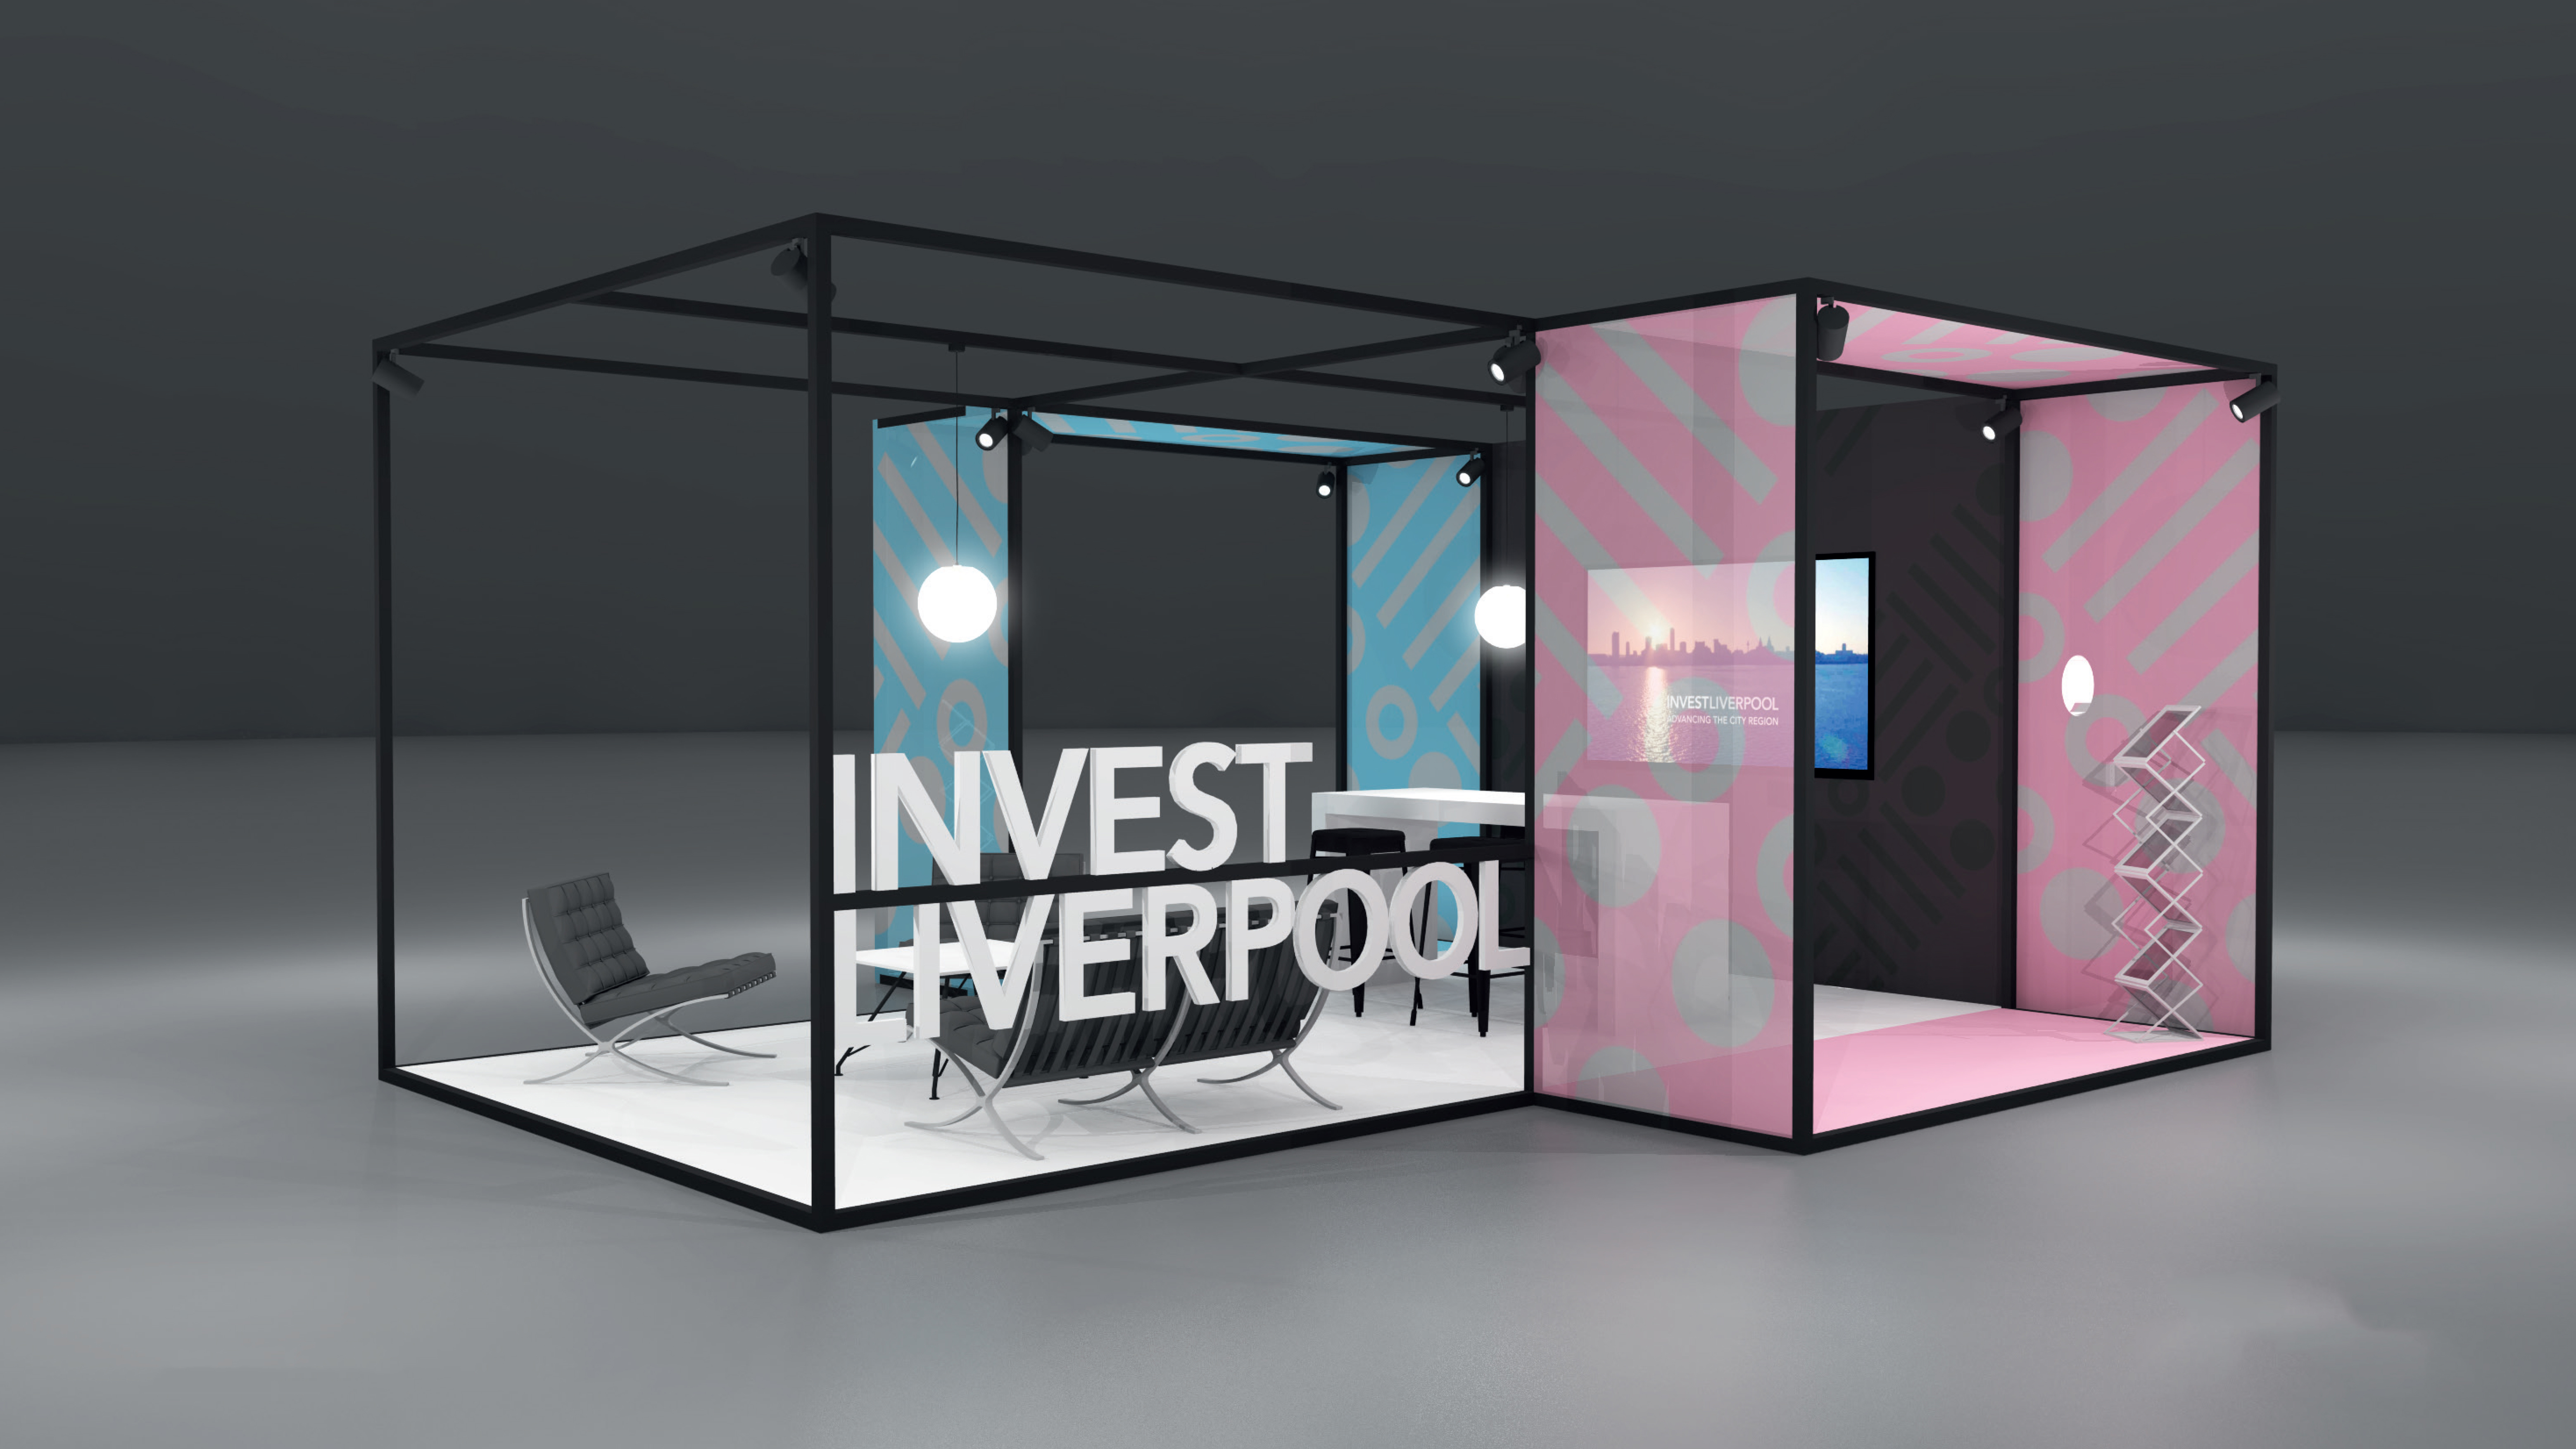 Marketing Exhibition Stand Zone : Marketing liverpool design invest liverpool stand at smart factory